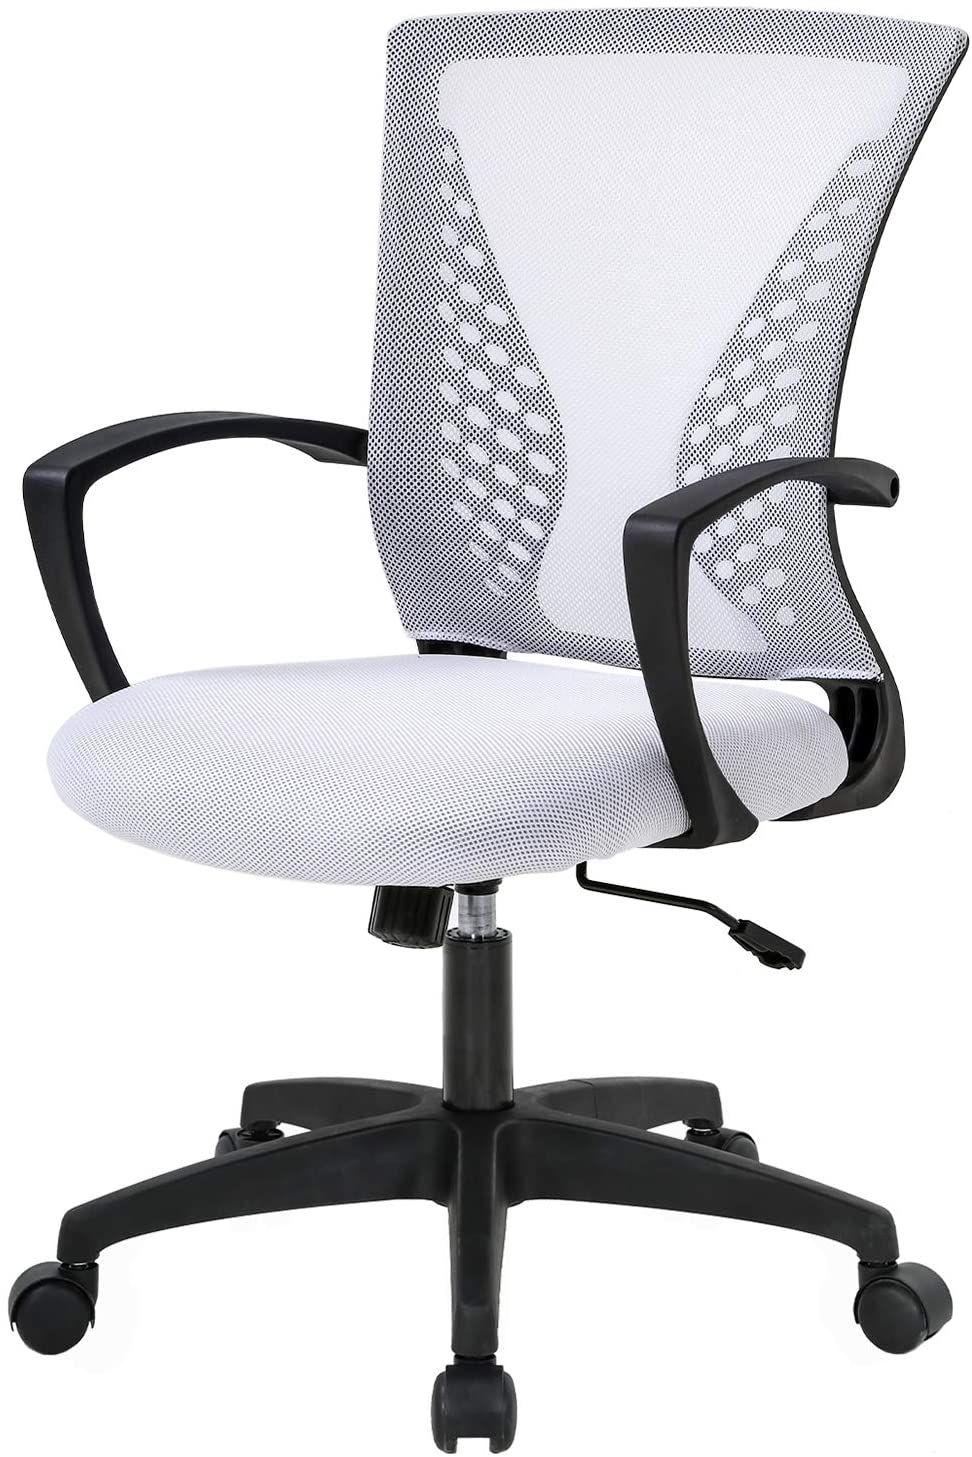 Home Office Chair Mid Back PC Swivel Lumbar Support Adjustable Desk Task Computer Ergonomic Comfortable Mesh Chair with Armrest (White)